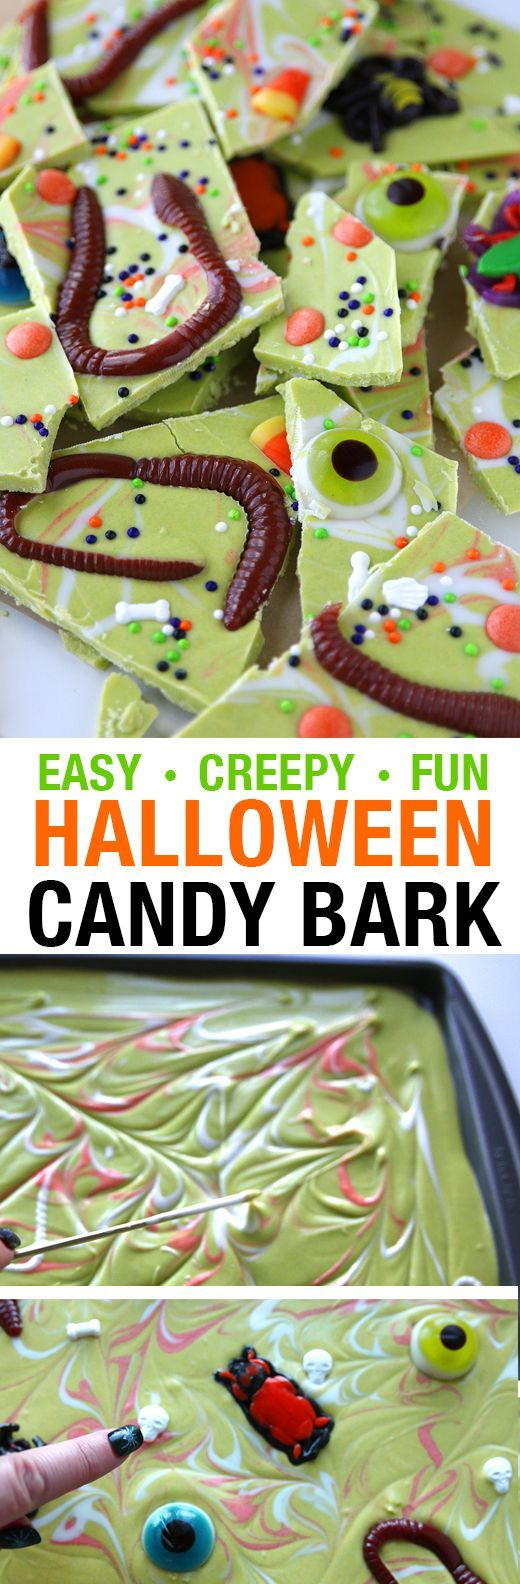 worms and bugs halloween candy bark treats | halloween party treats